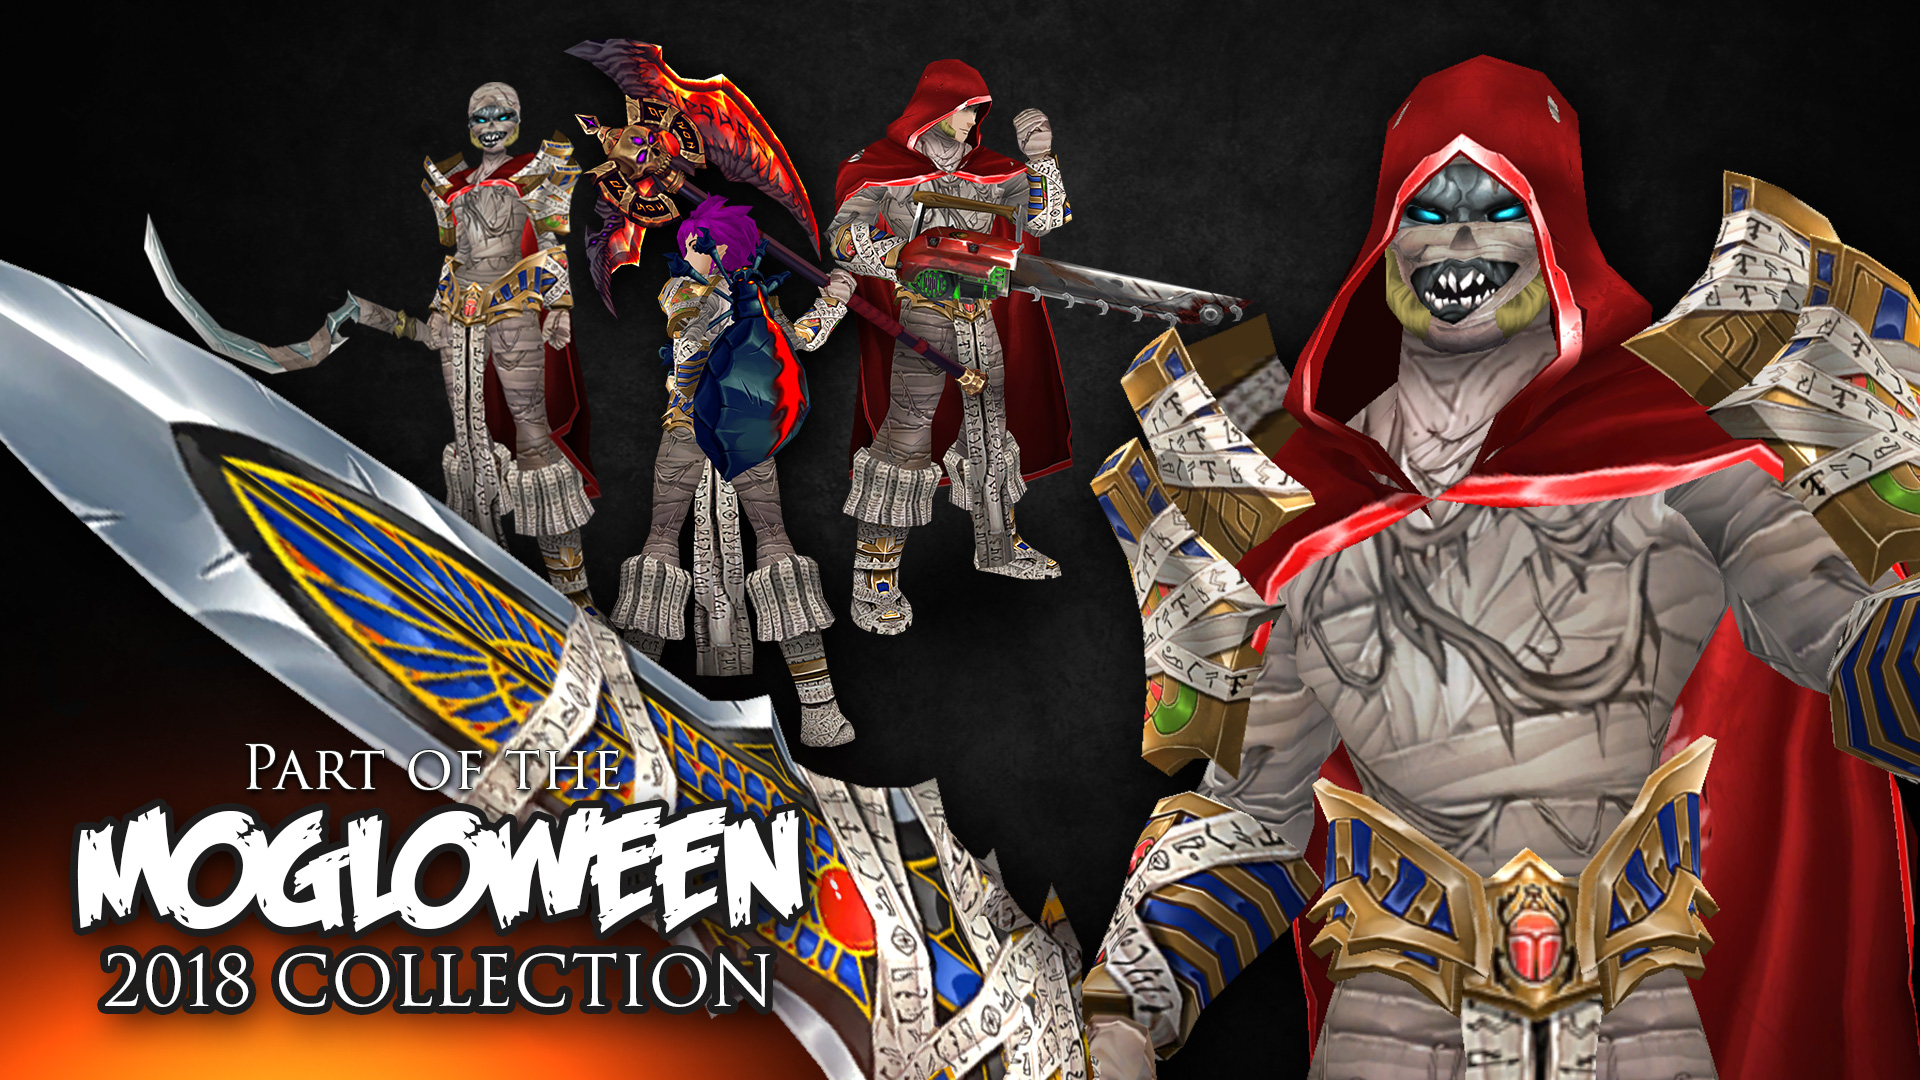 Mogloween collection 2018 armors